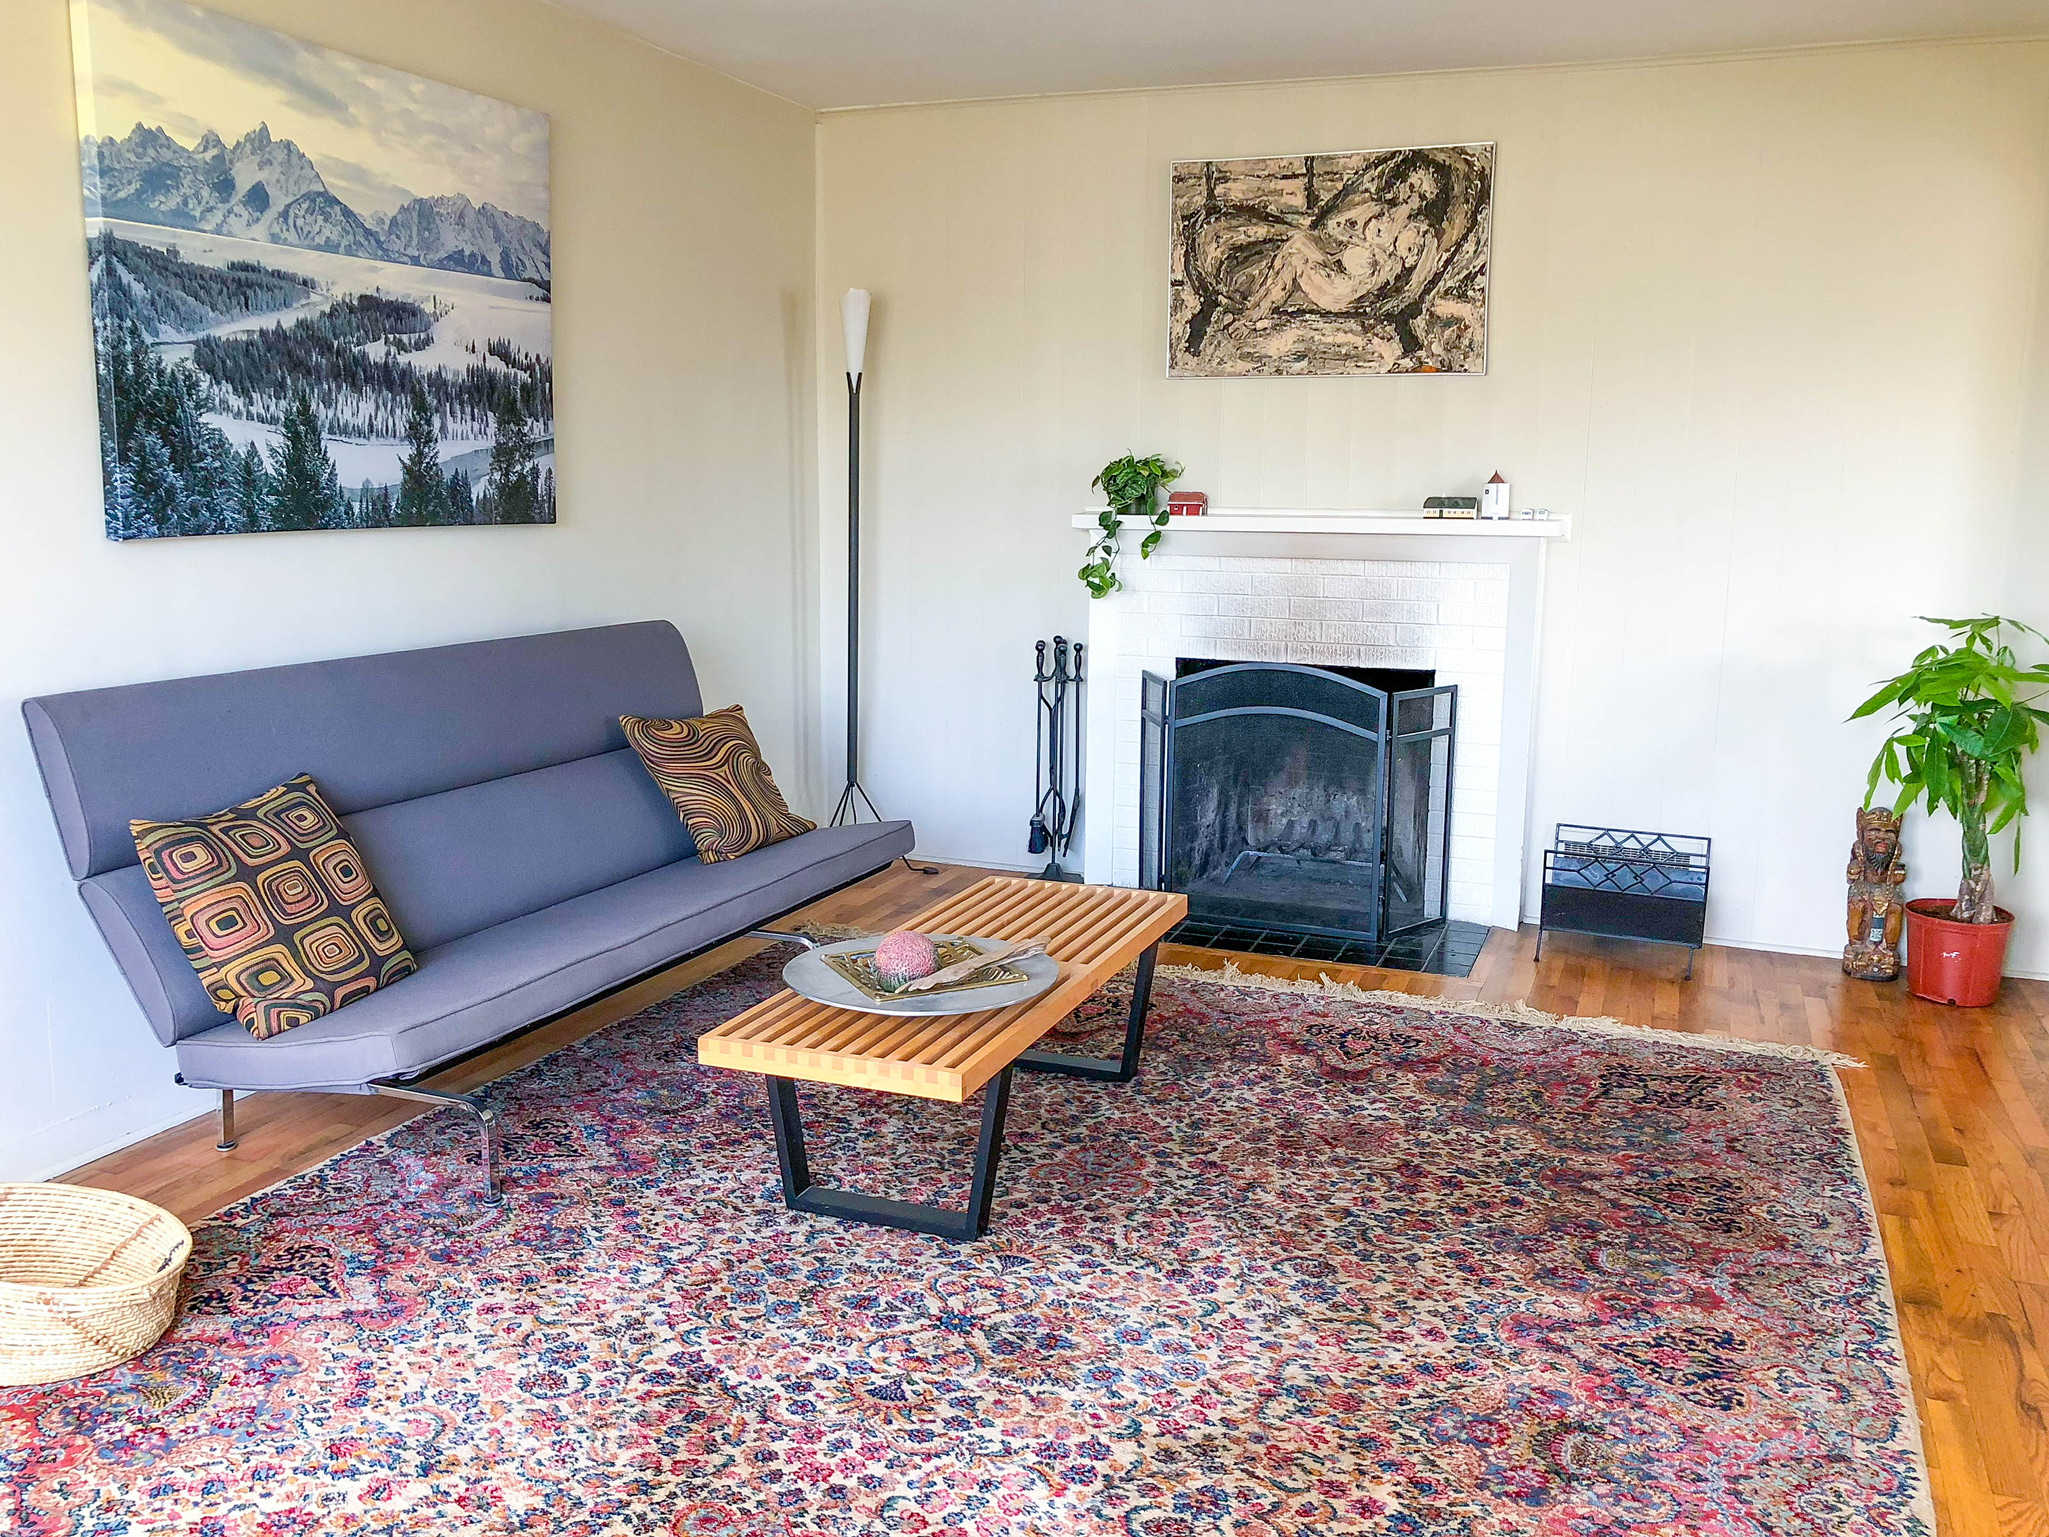 Sunny, Central, Cool Home!! - https://www.airbnb.com/rooms/23750498?s=51